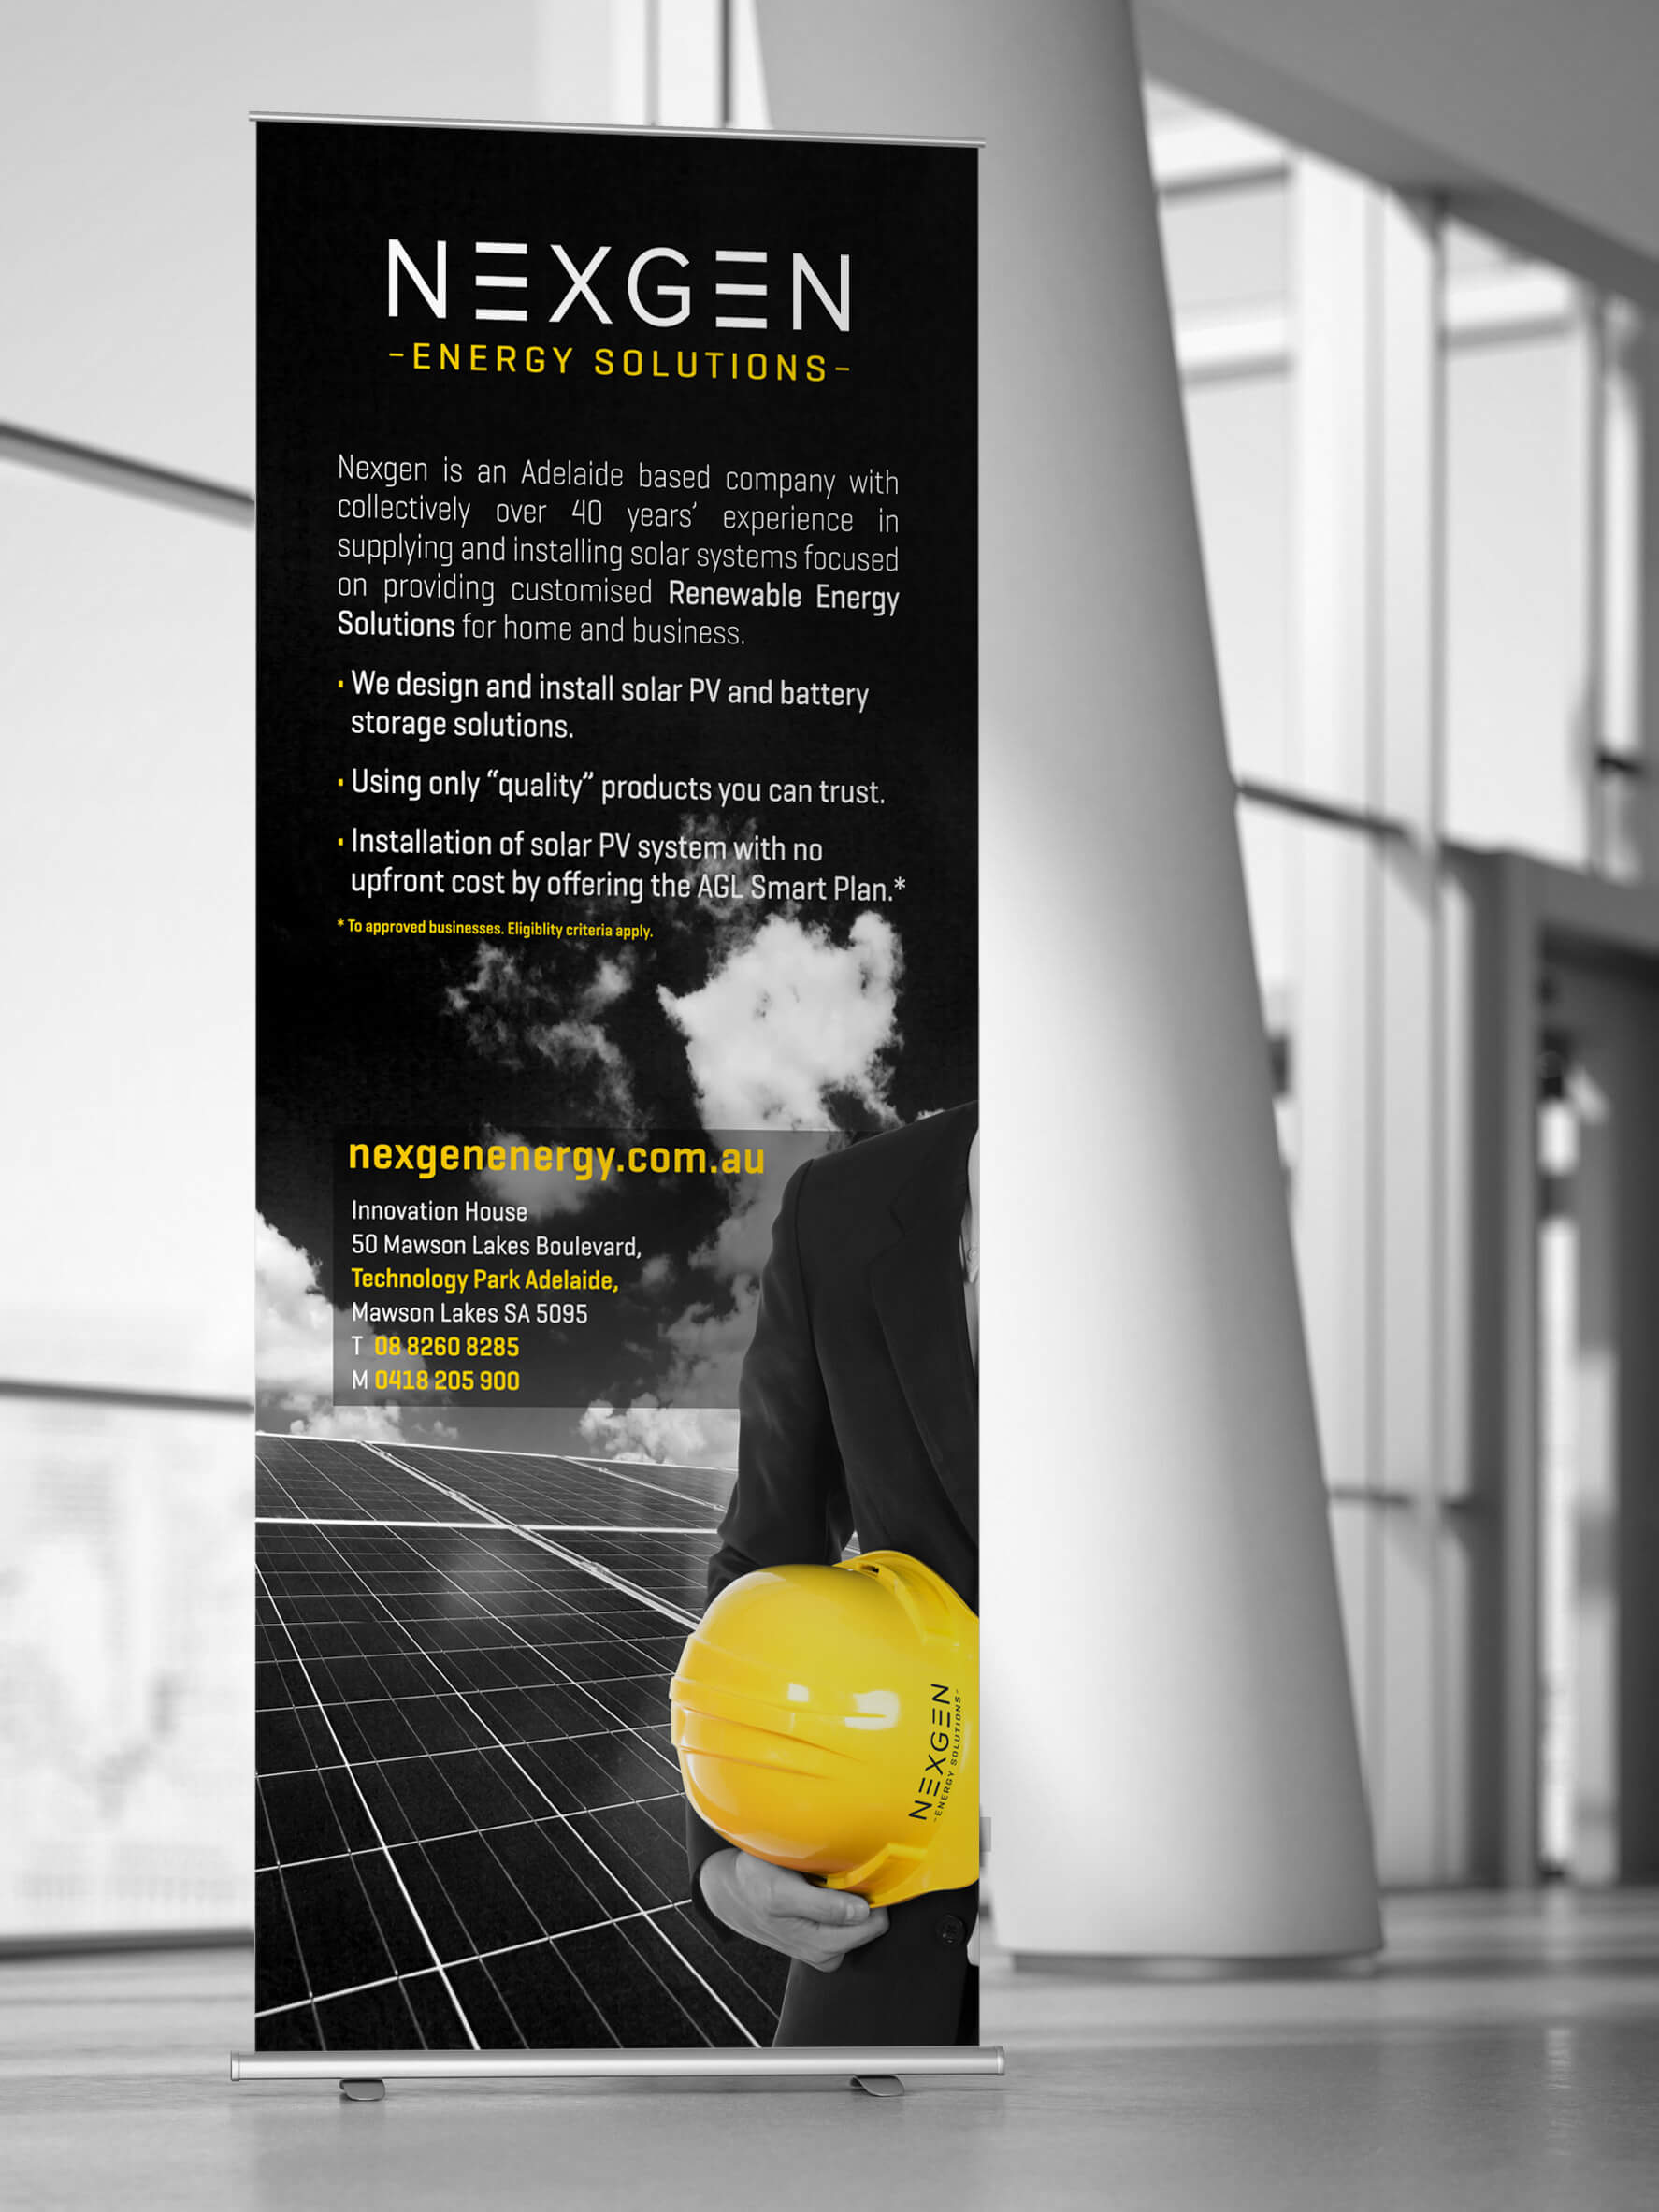 Icon Graphic Design Adelaide - business card design page image of Nexgen Energy Solutions pull-up display.